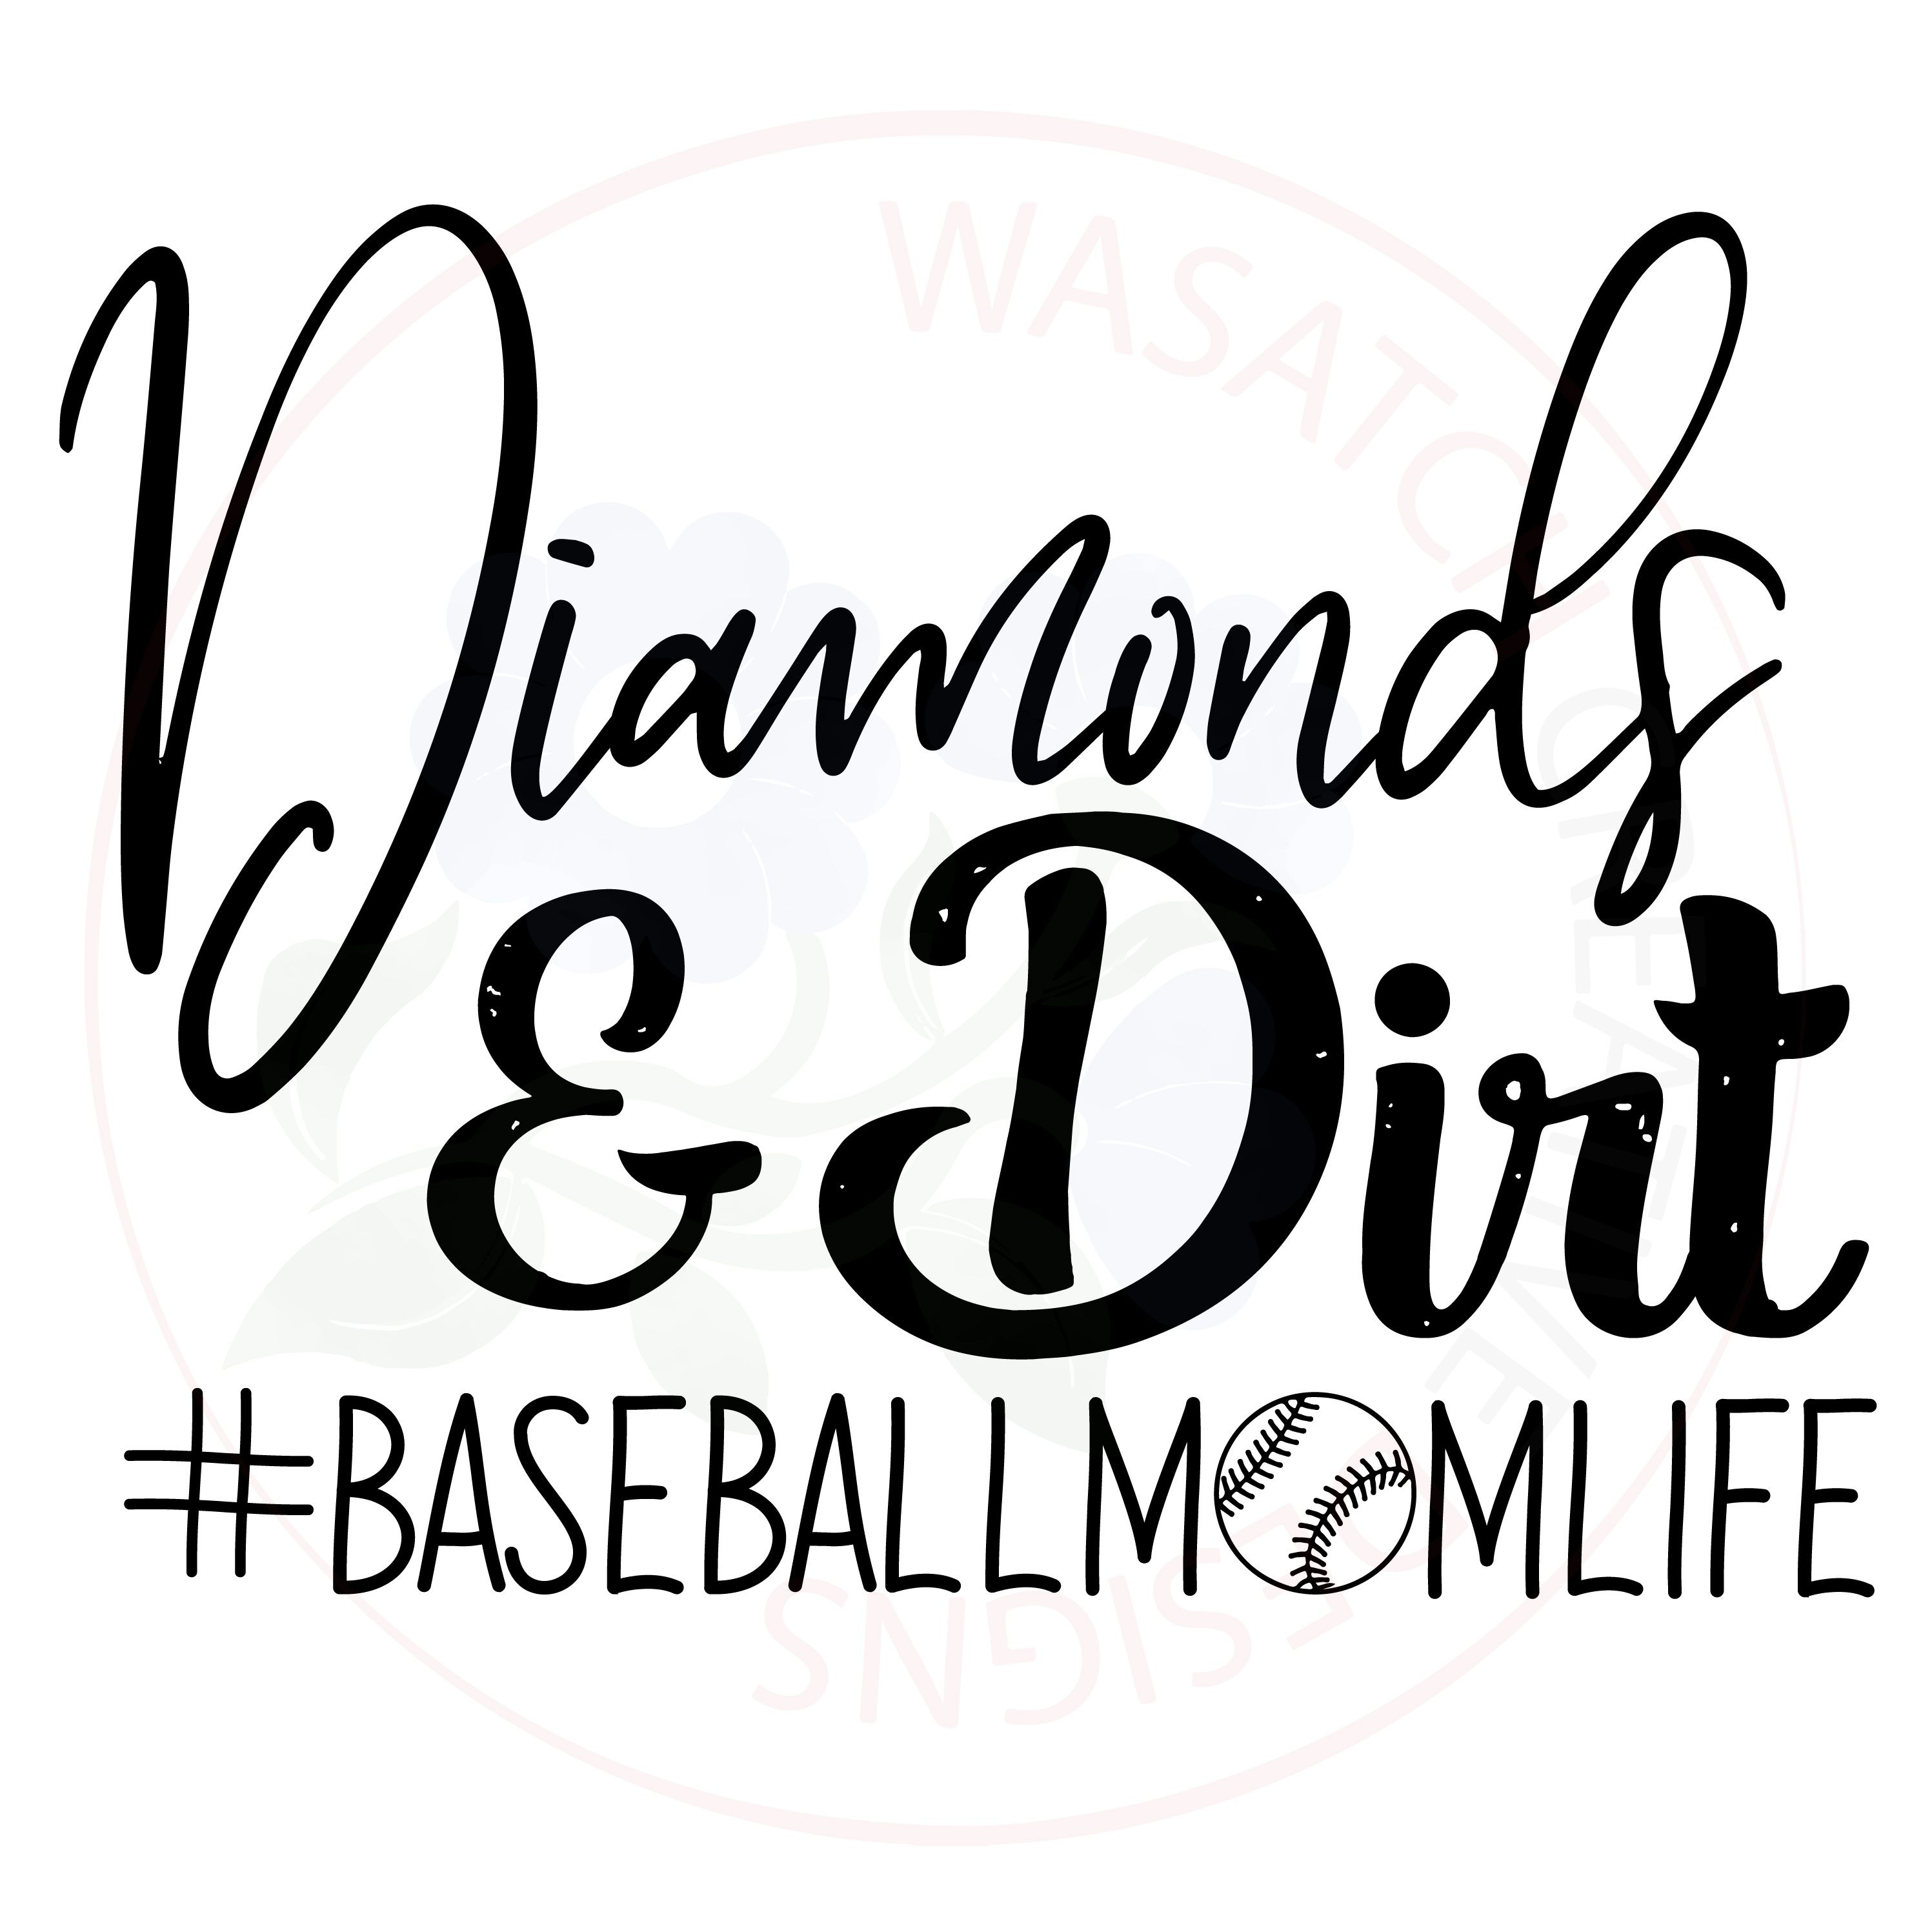 Baseball mom SVG, EPS, DXF, JPG, and PDF for cutting